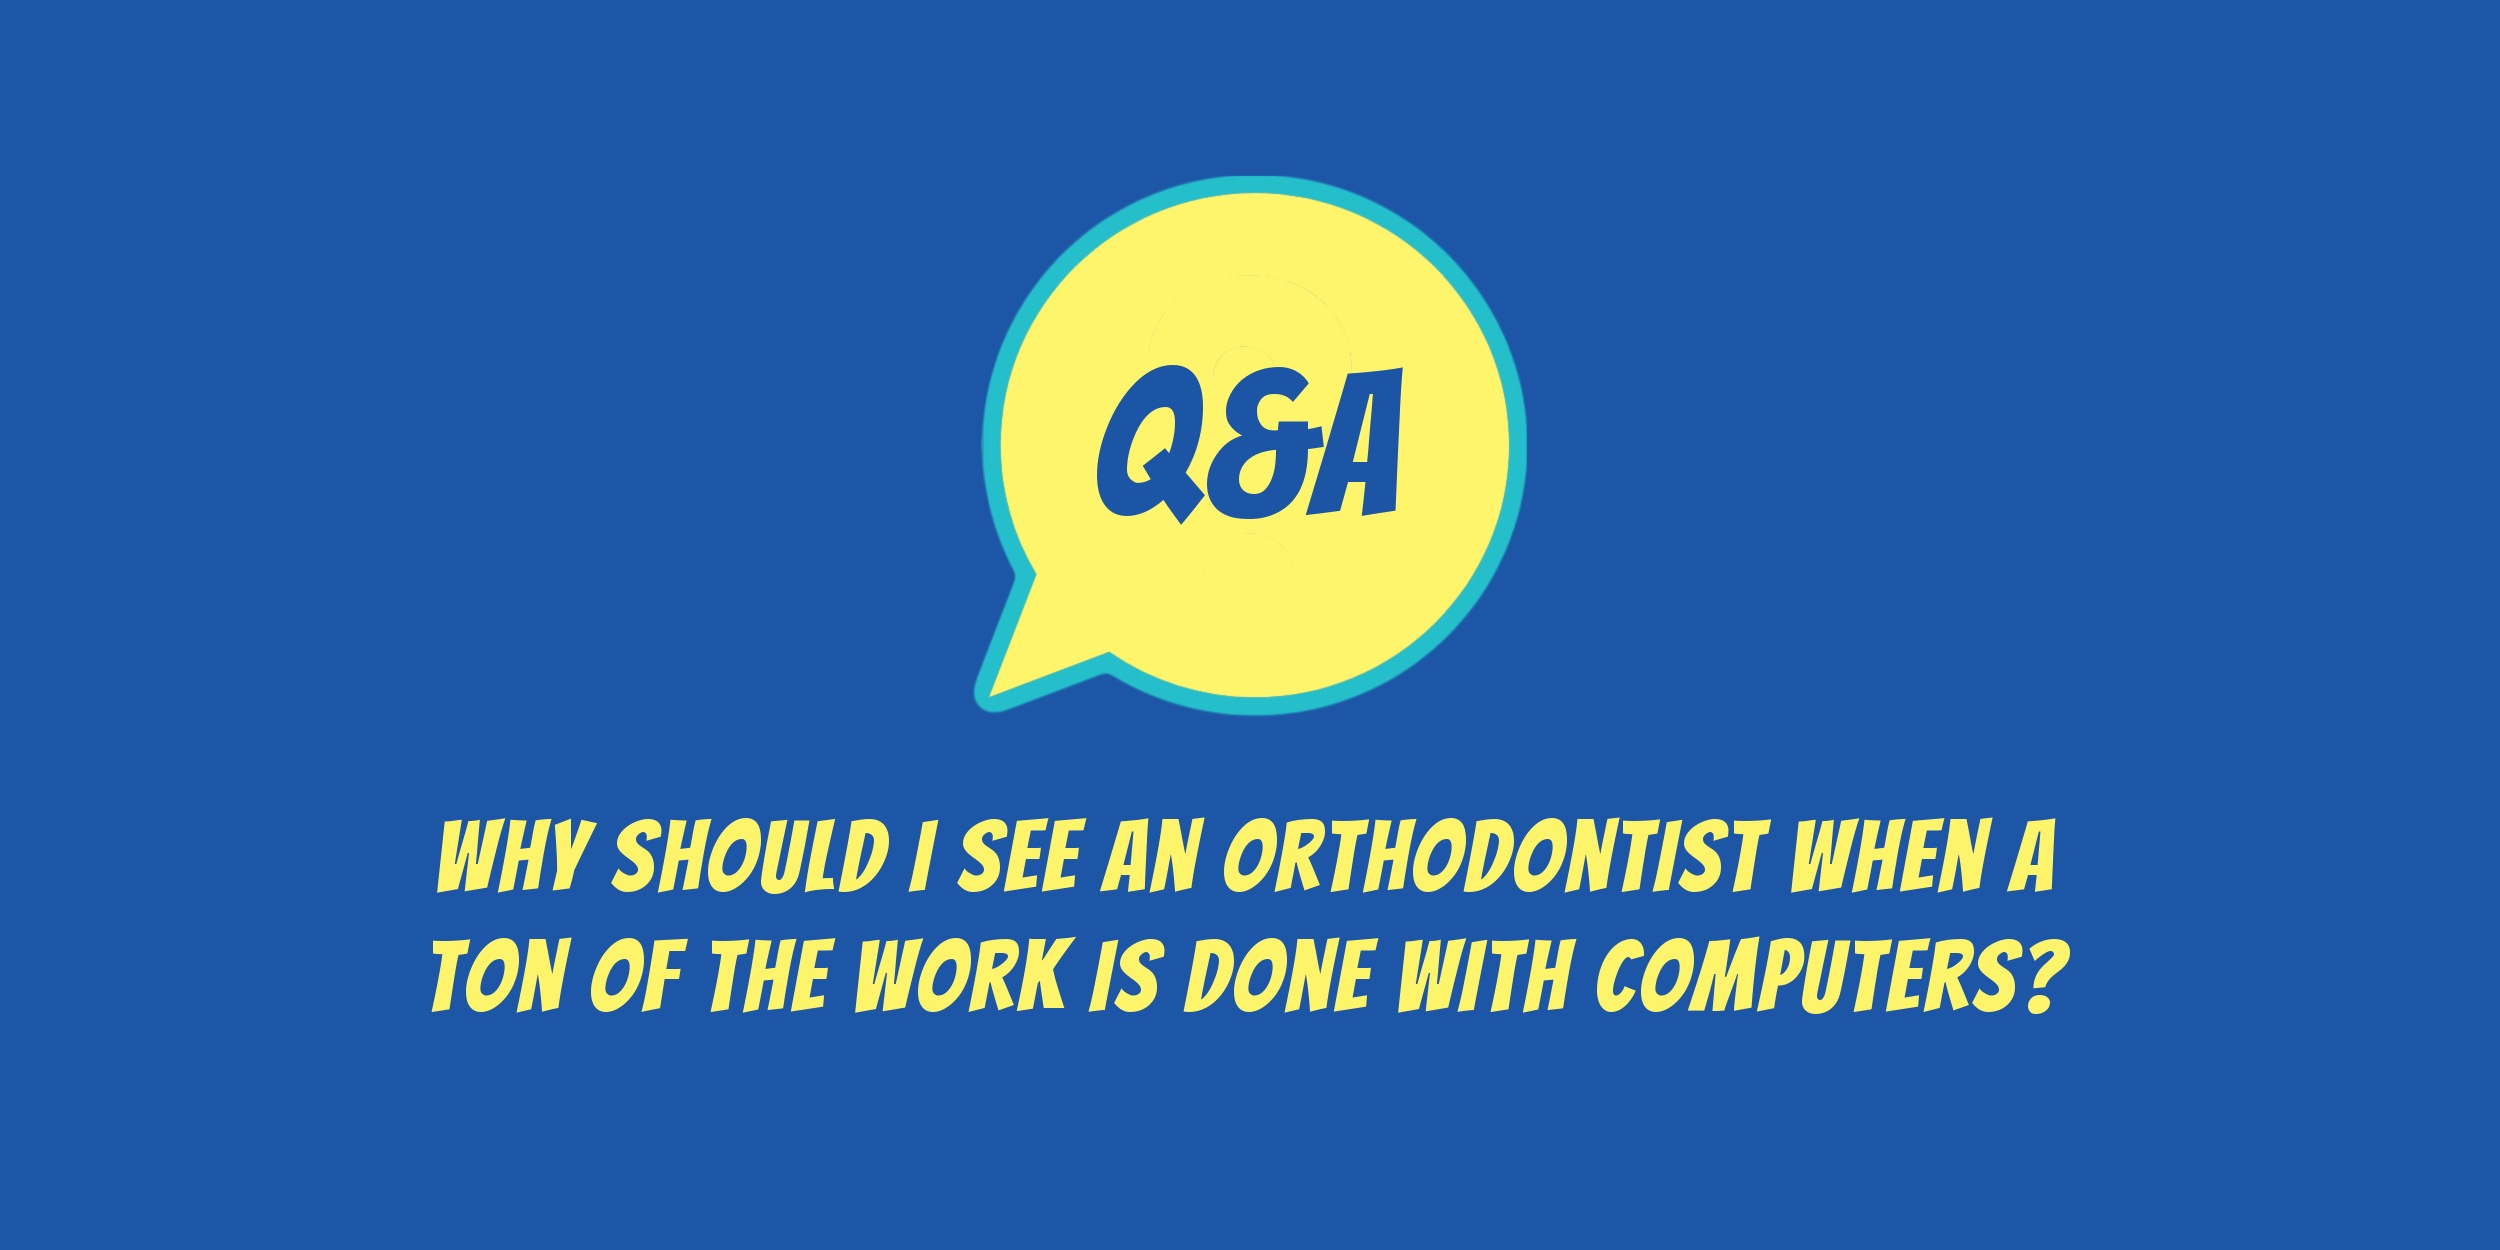 Q&A with Dr Antosz and Dr Vincelli: Why should I see an orthodontist?